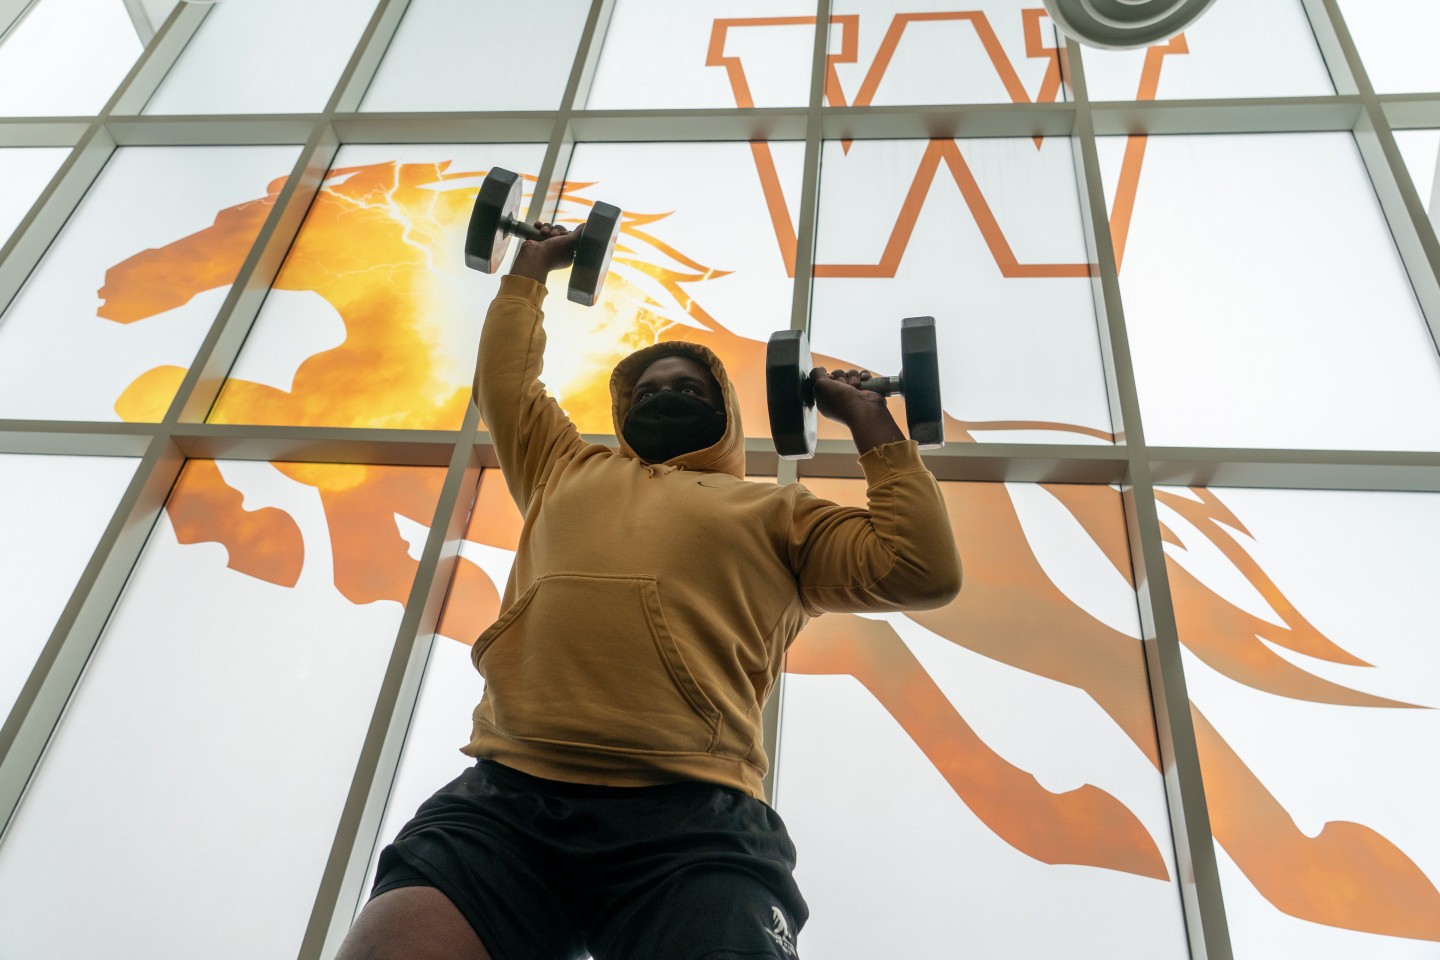 A man wearing a mask while lifting weights in front of the window of the Student Recreation Center.